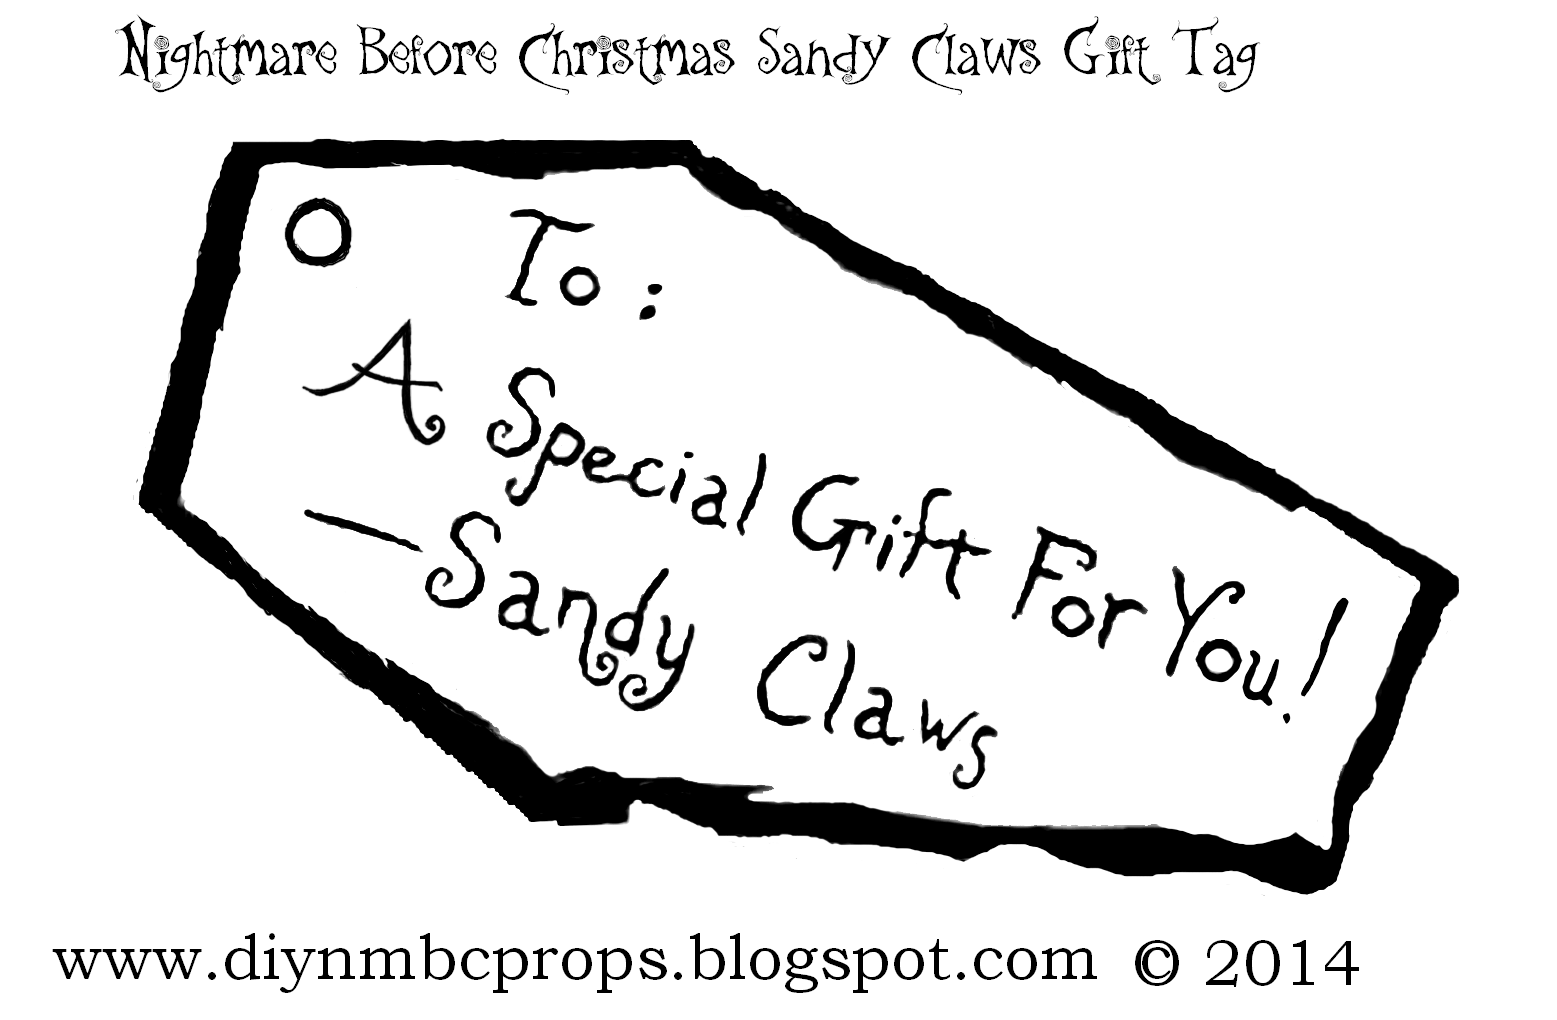 Nightmare Before Christmas Sandy Claws Gift Tags Printable | DIY ...